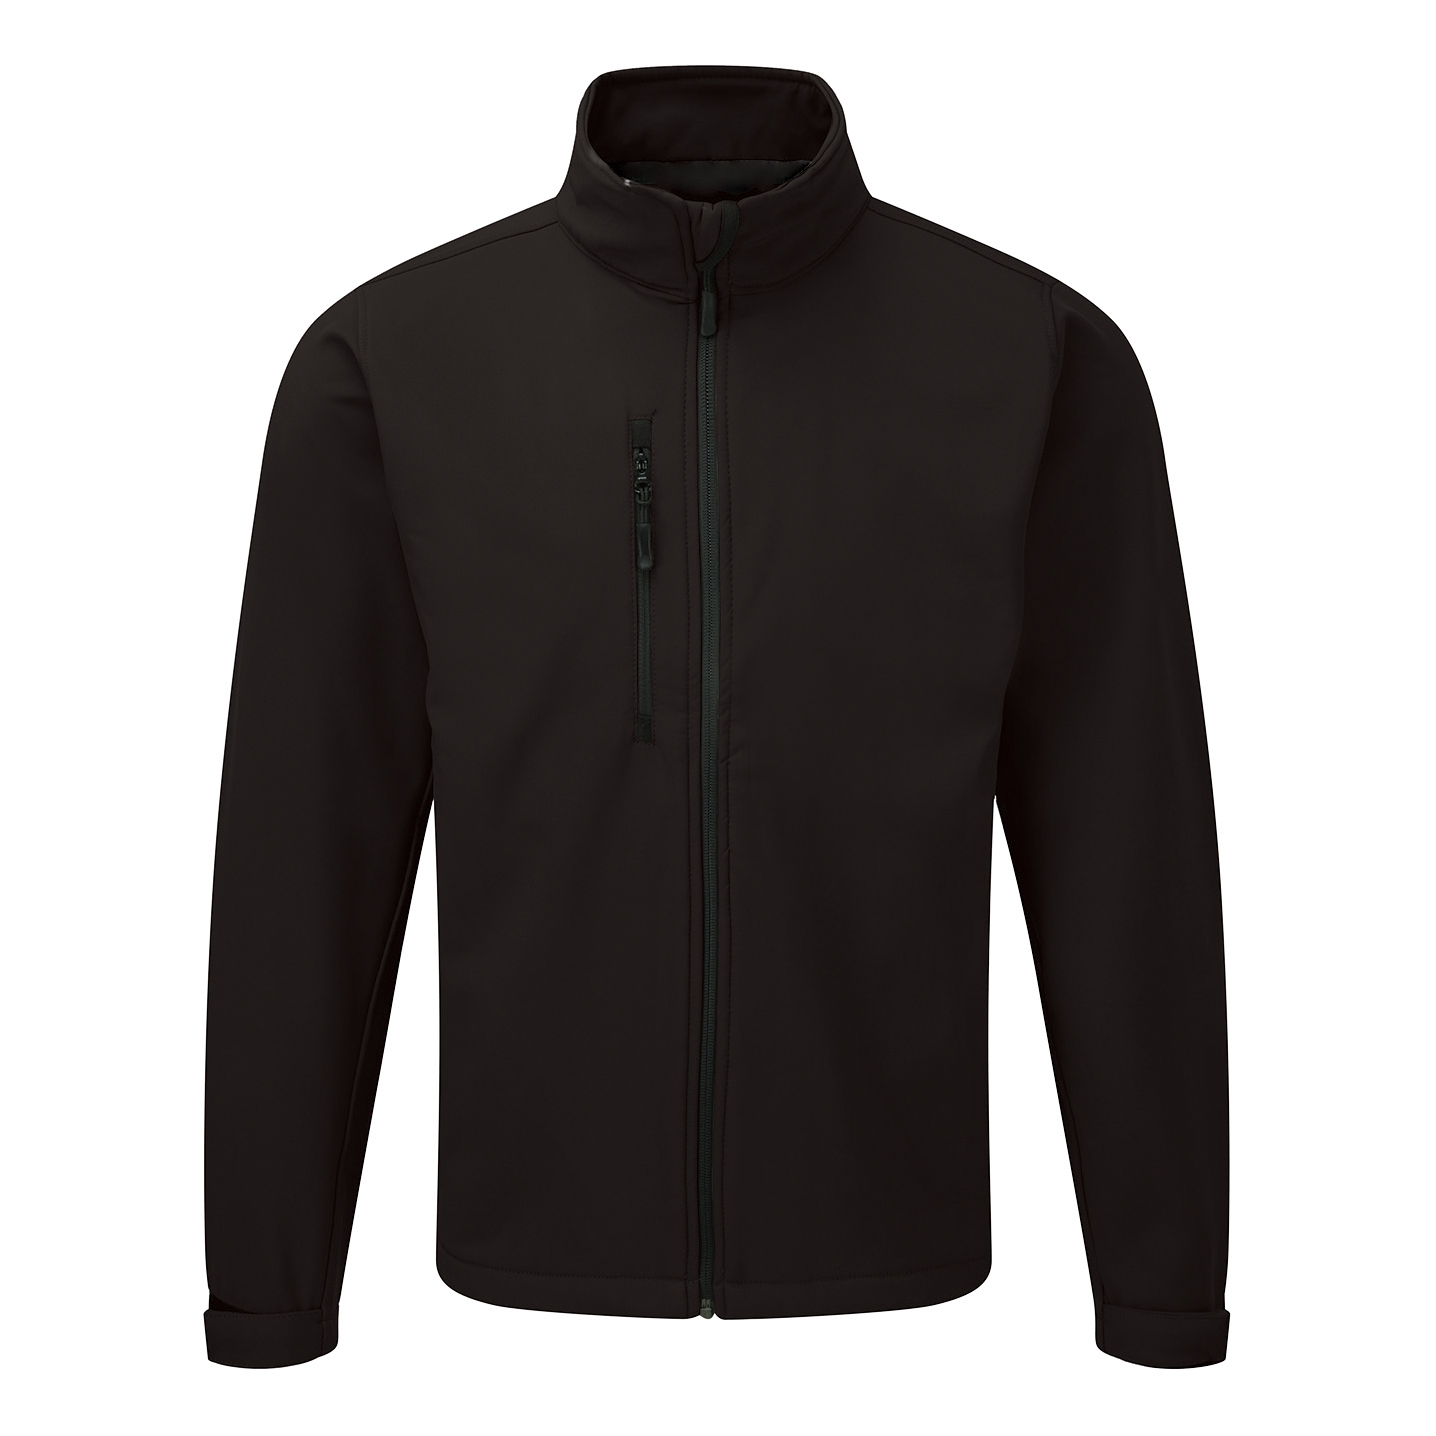 Click Workwear Soft Shell Jacket Water Resistant Windproof Med Black Ref SSJBLM *Approx 3 Day Leadtime*